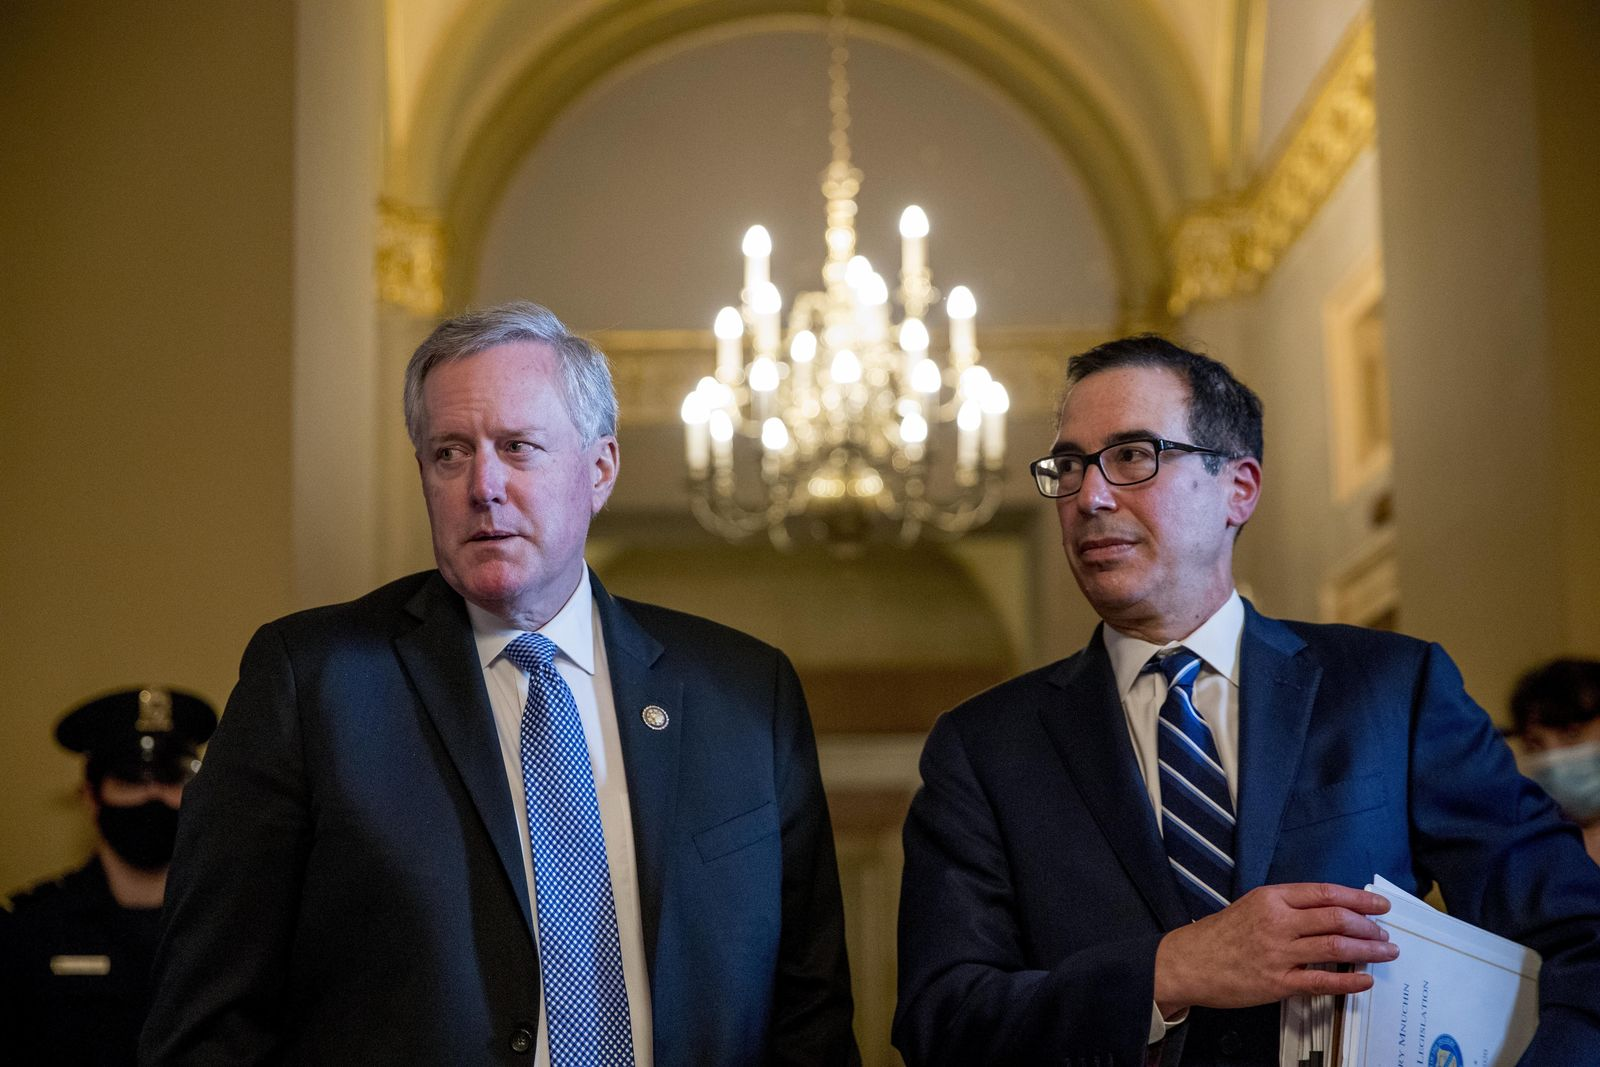 White House chief of staff Mark Meadows, left, accompanied by Treasury Secretary Steven Mnuchin, right, speaks to members of the media following a meeting with Senate Majority Leader Mitch McConnell. (AP Photo/Andrew Harnik)